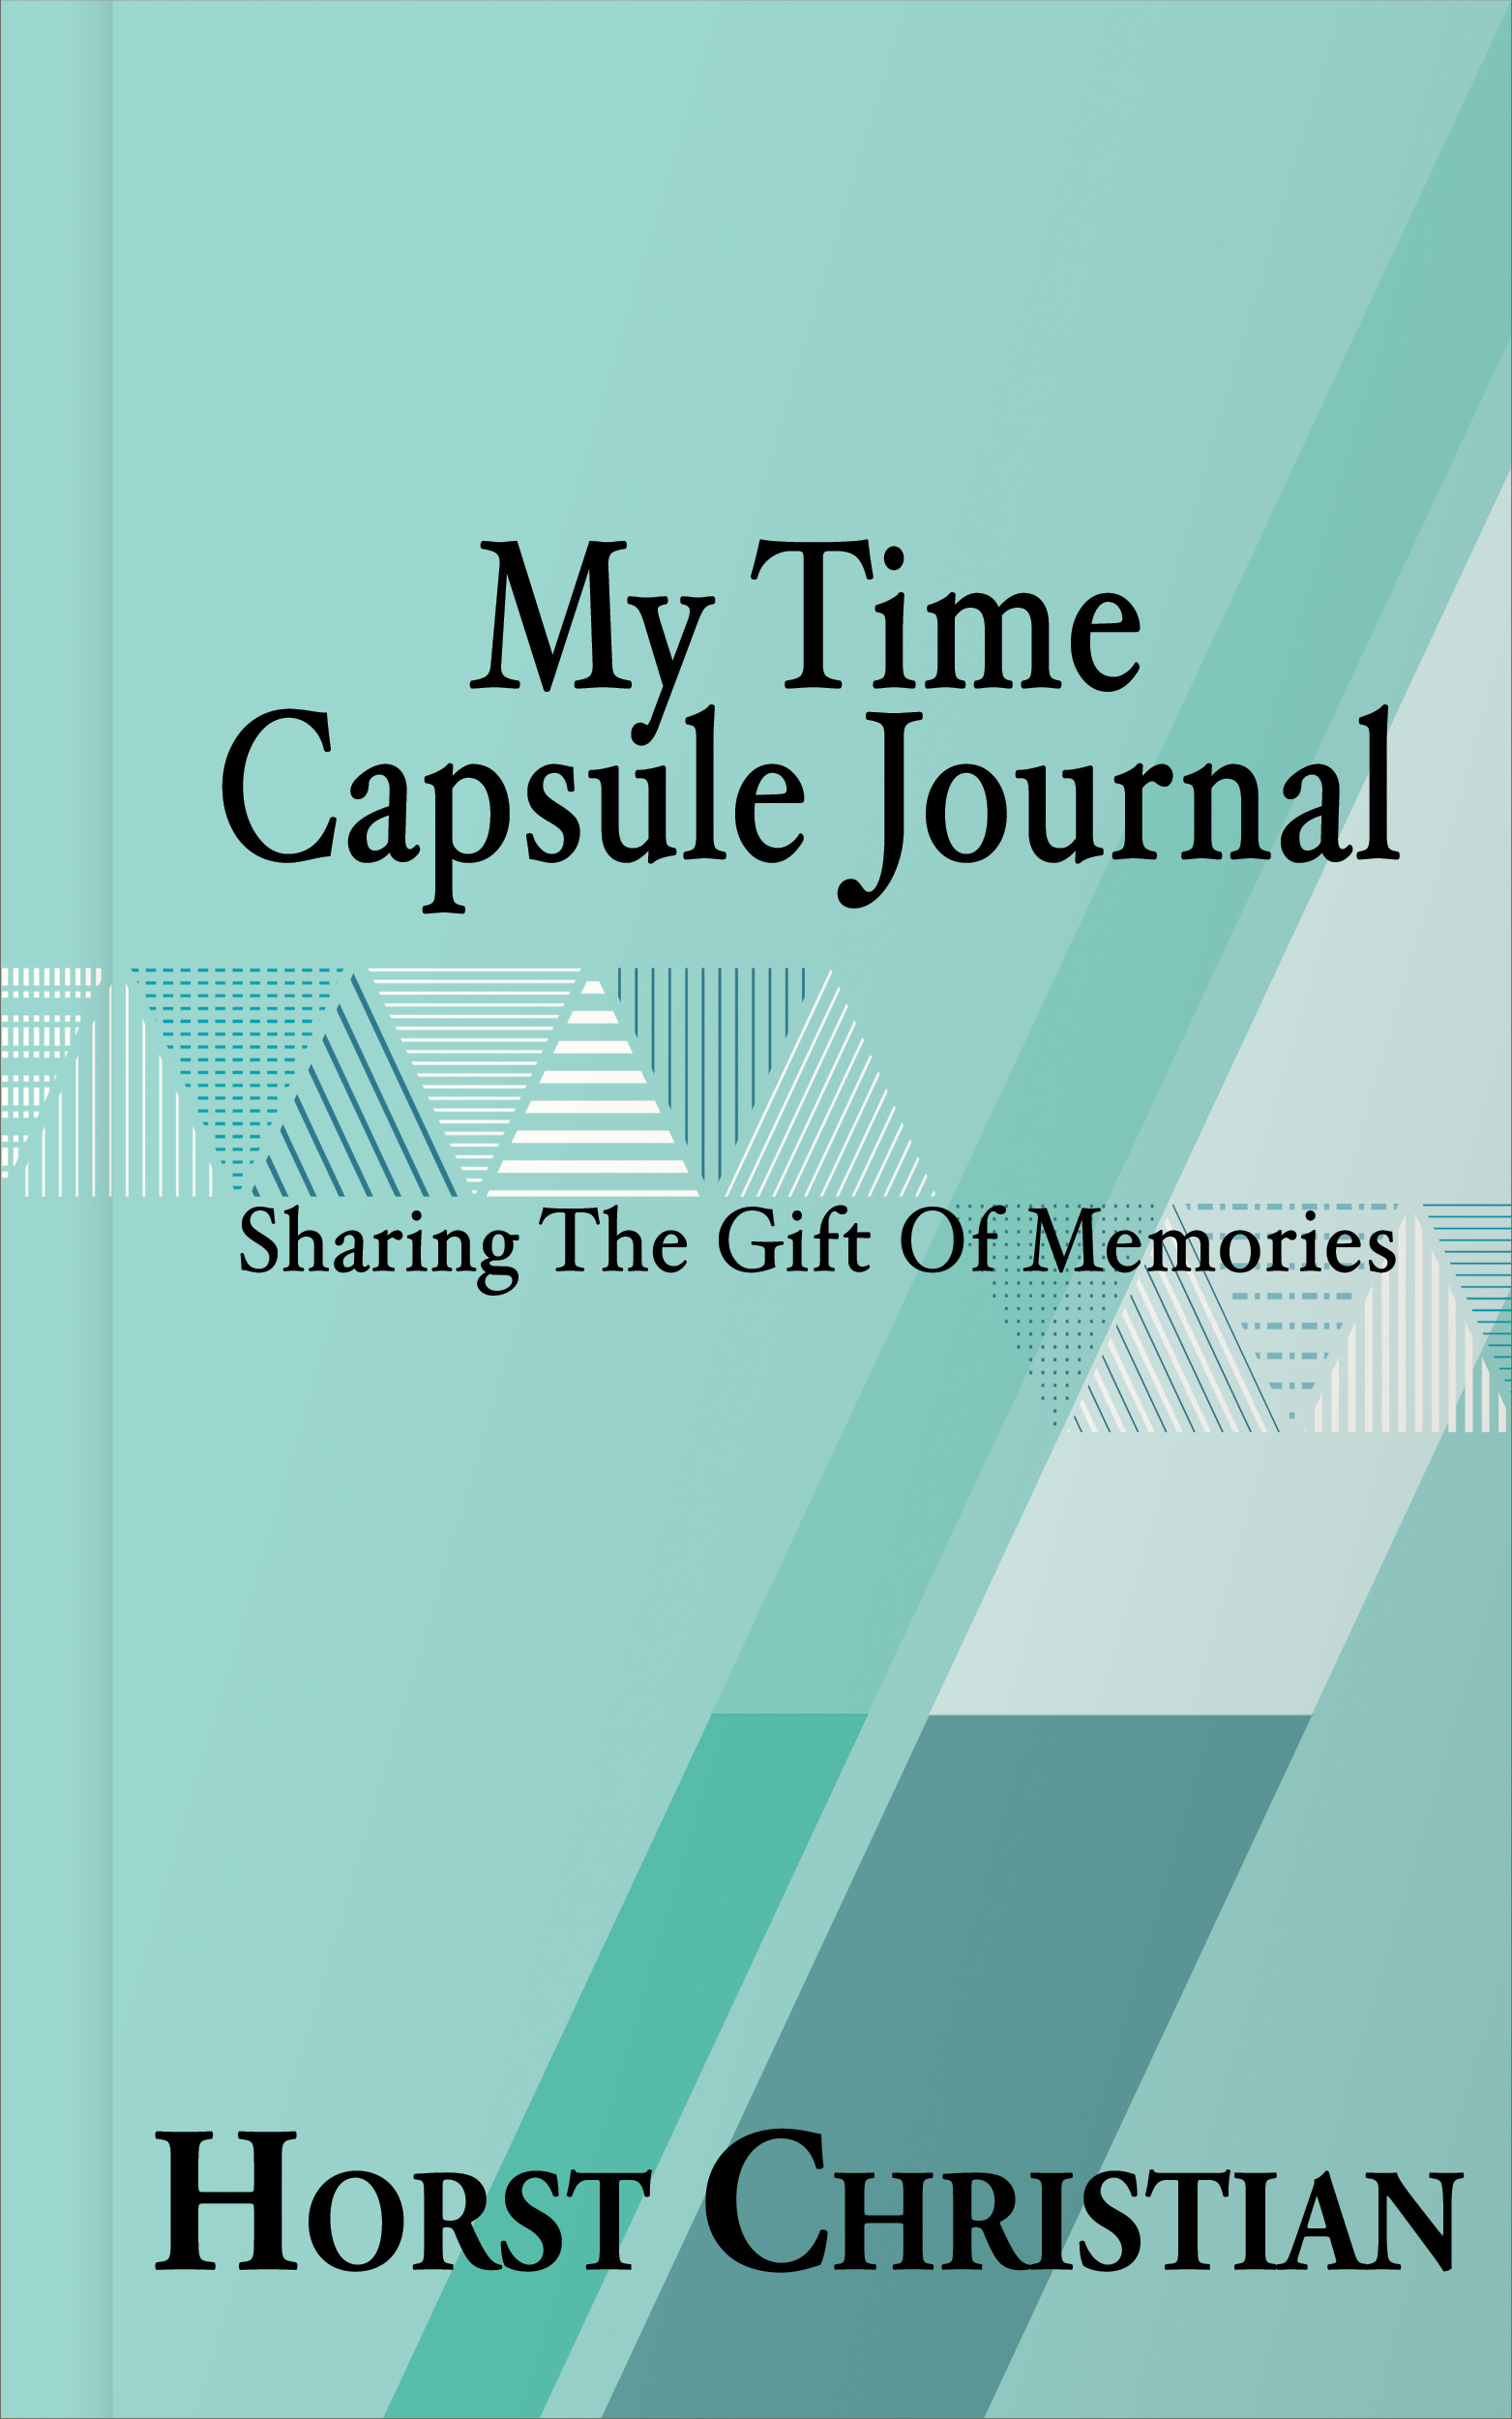 My Time Capsule Journal